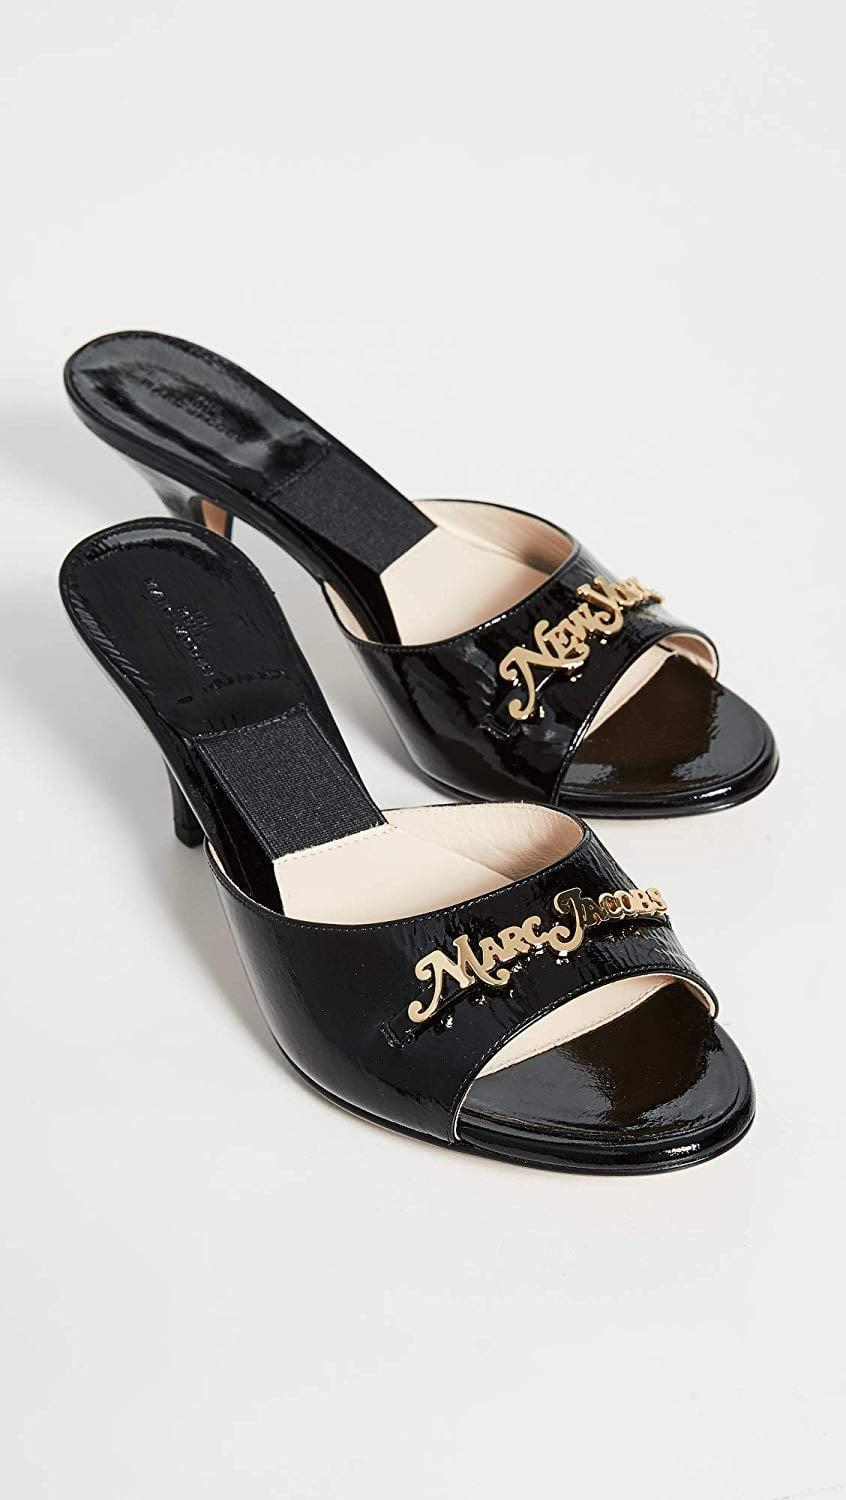 <p>As soon as we saw these <span>Marc Jacobs The Kitten Heels</span> ($112-$235), we were obsessed.</p>